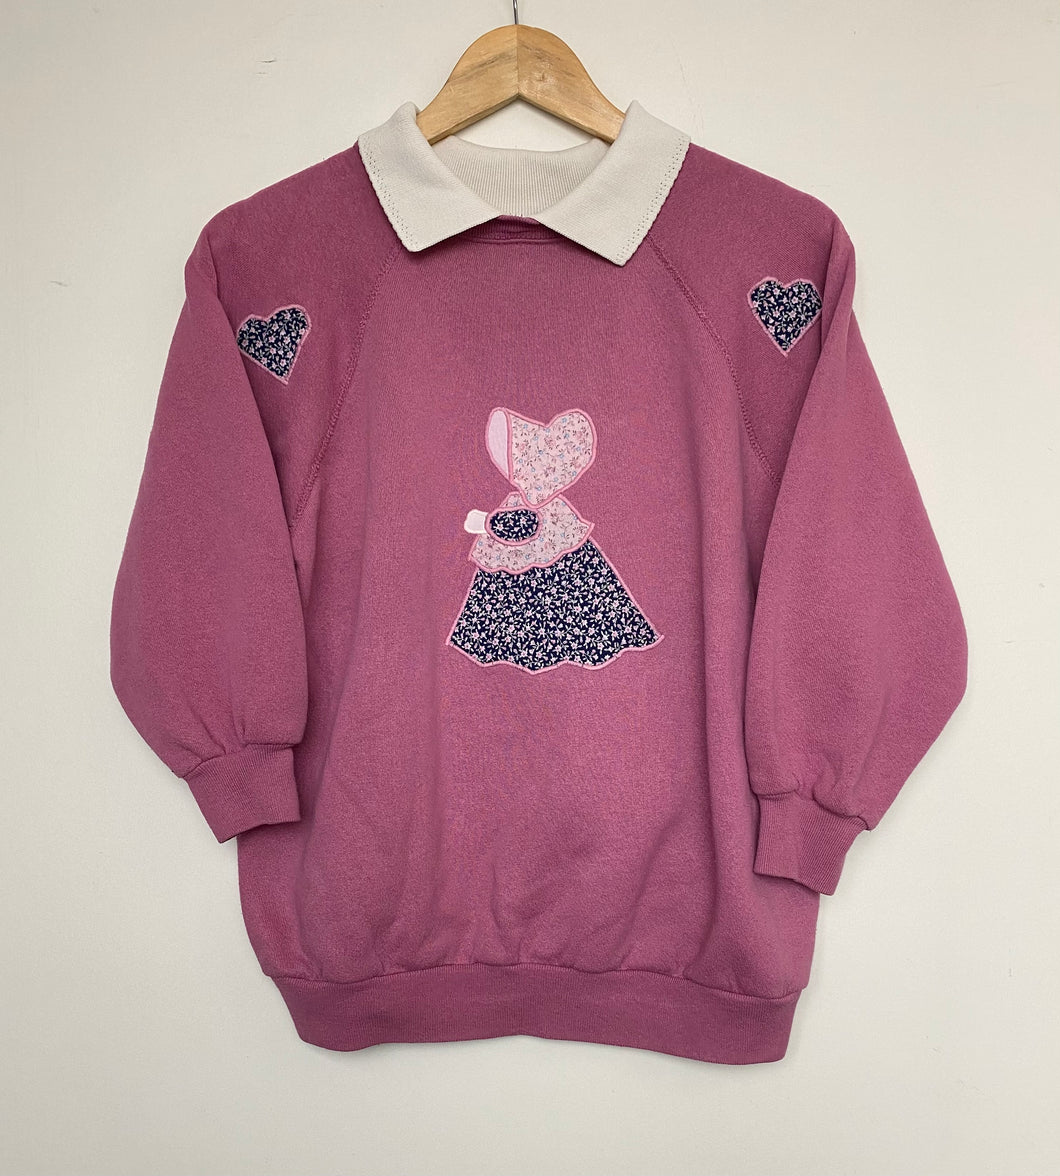 Embroidered sweatshirt (S)